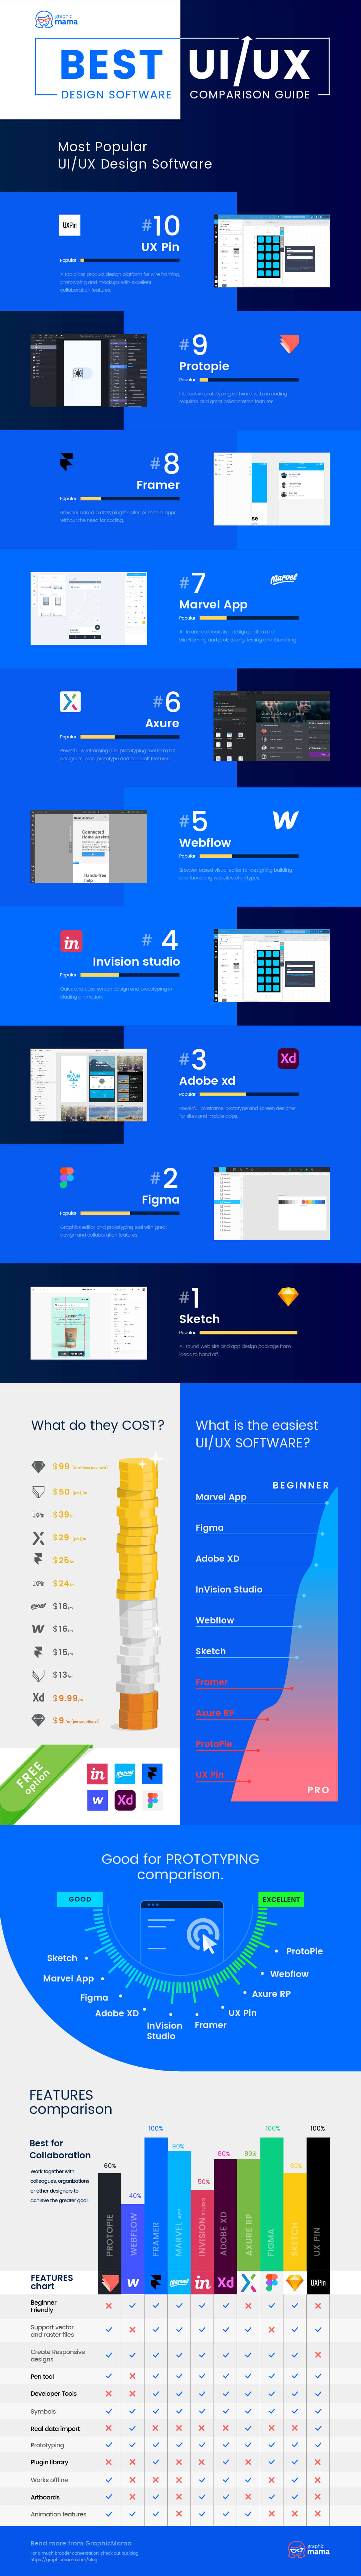 The Best Ui Ux Design Software Full Comparison Guide Infographic